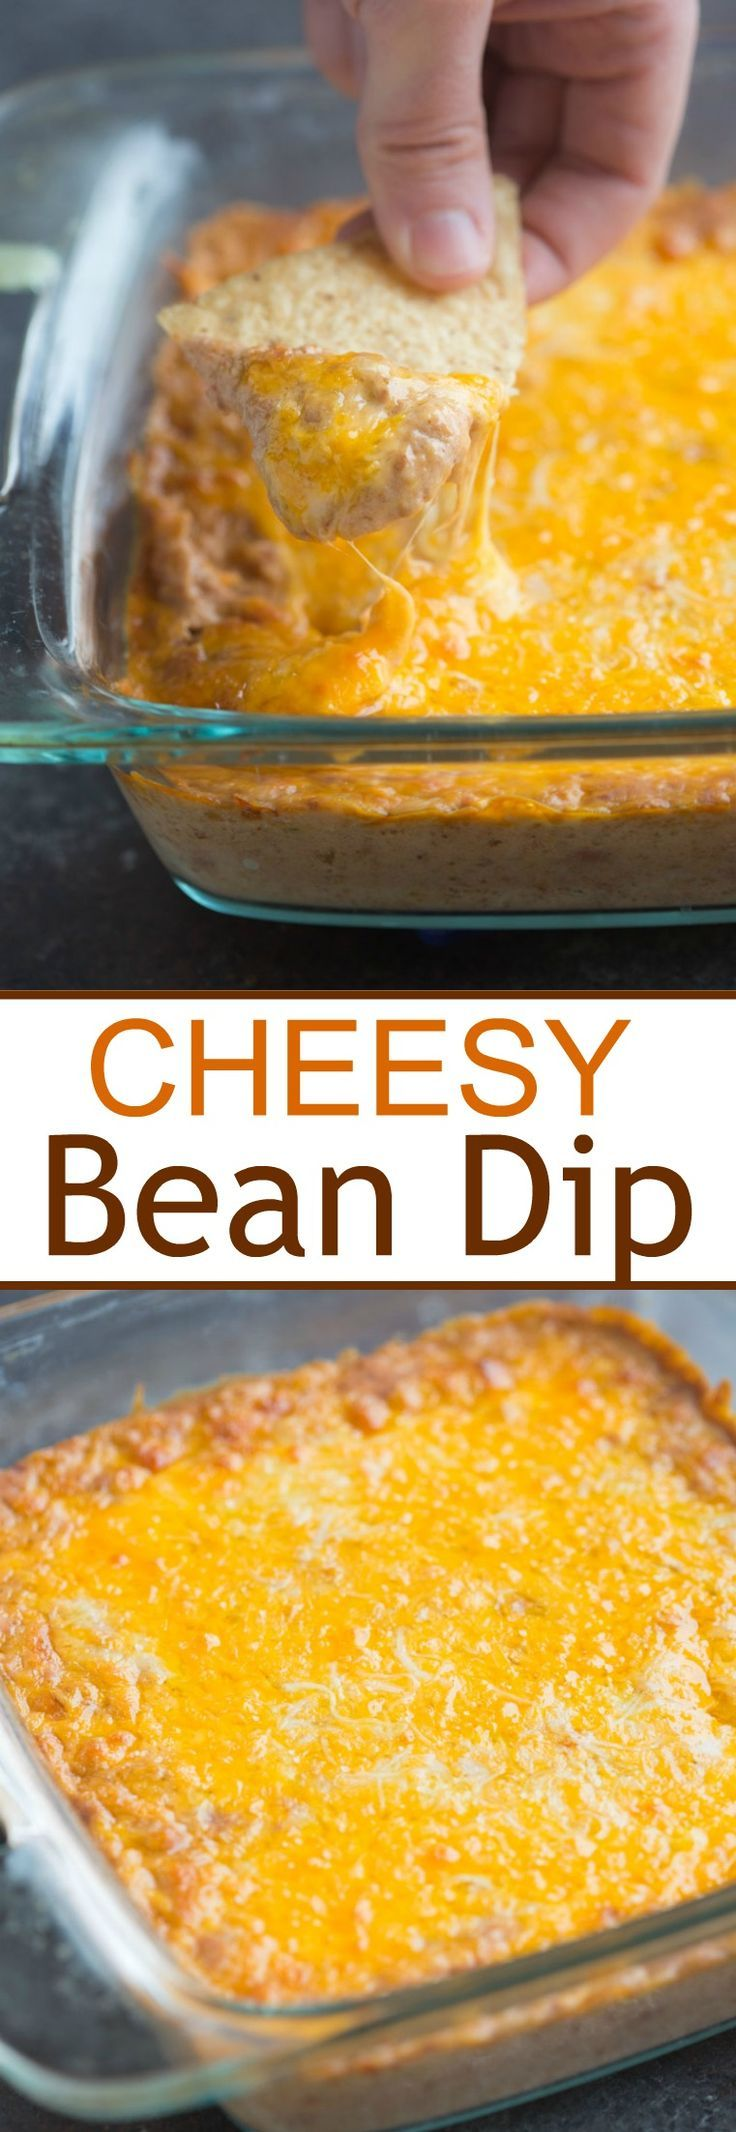 This warm, cheesy bean dip has just 6 ingredients and is the yummiest easy appetizer! Serve as a dip with tortilla chips or even inside tacos, or as a Mexican side dish. | Tastes Better From Scratch